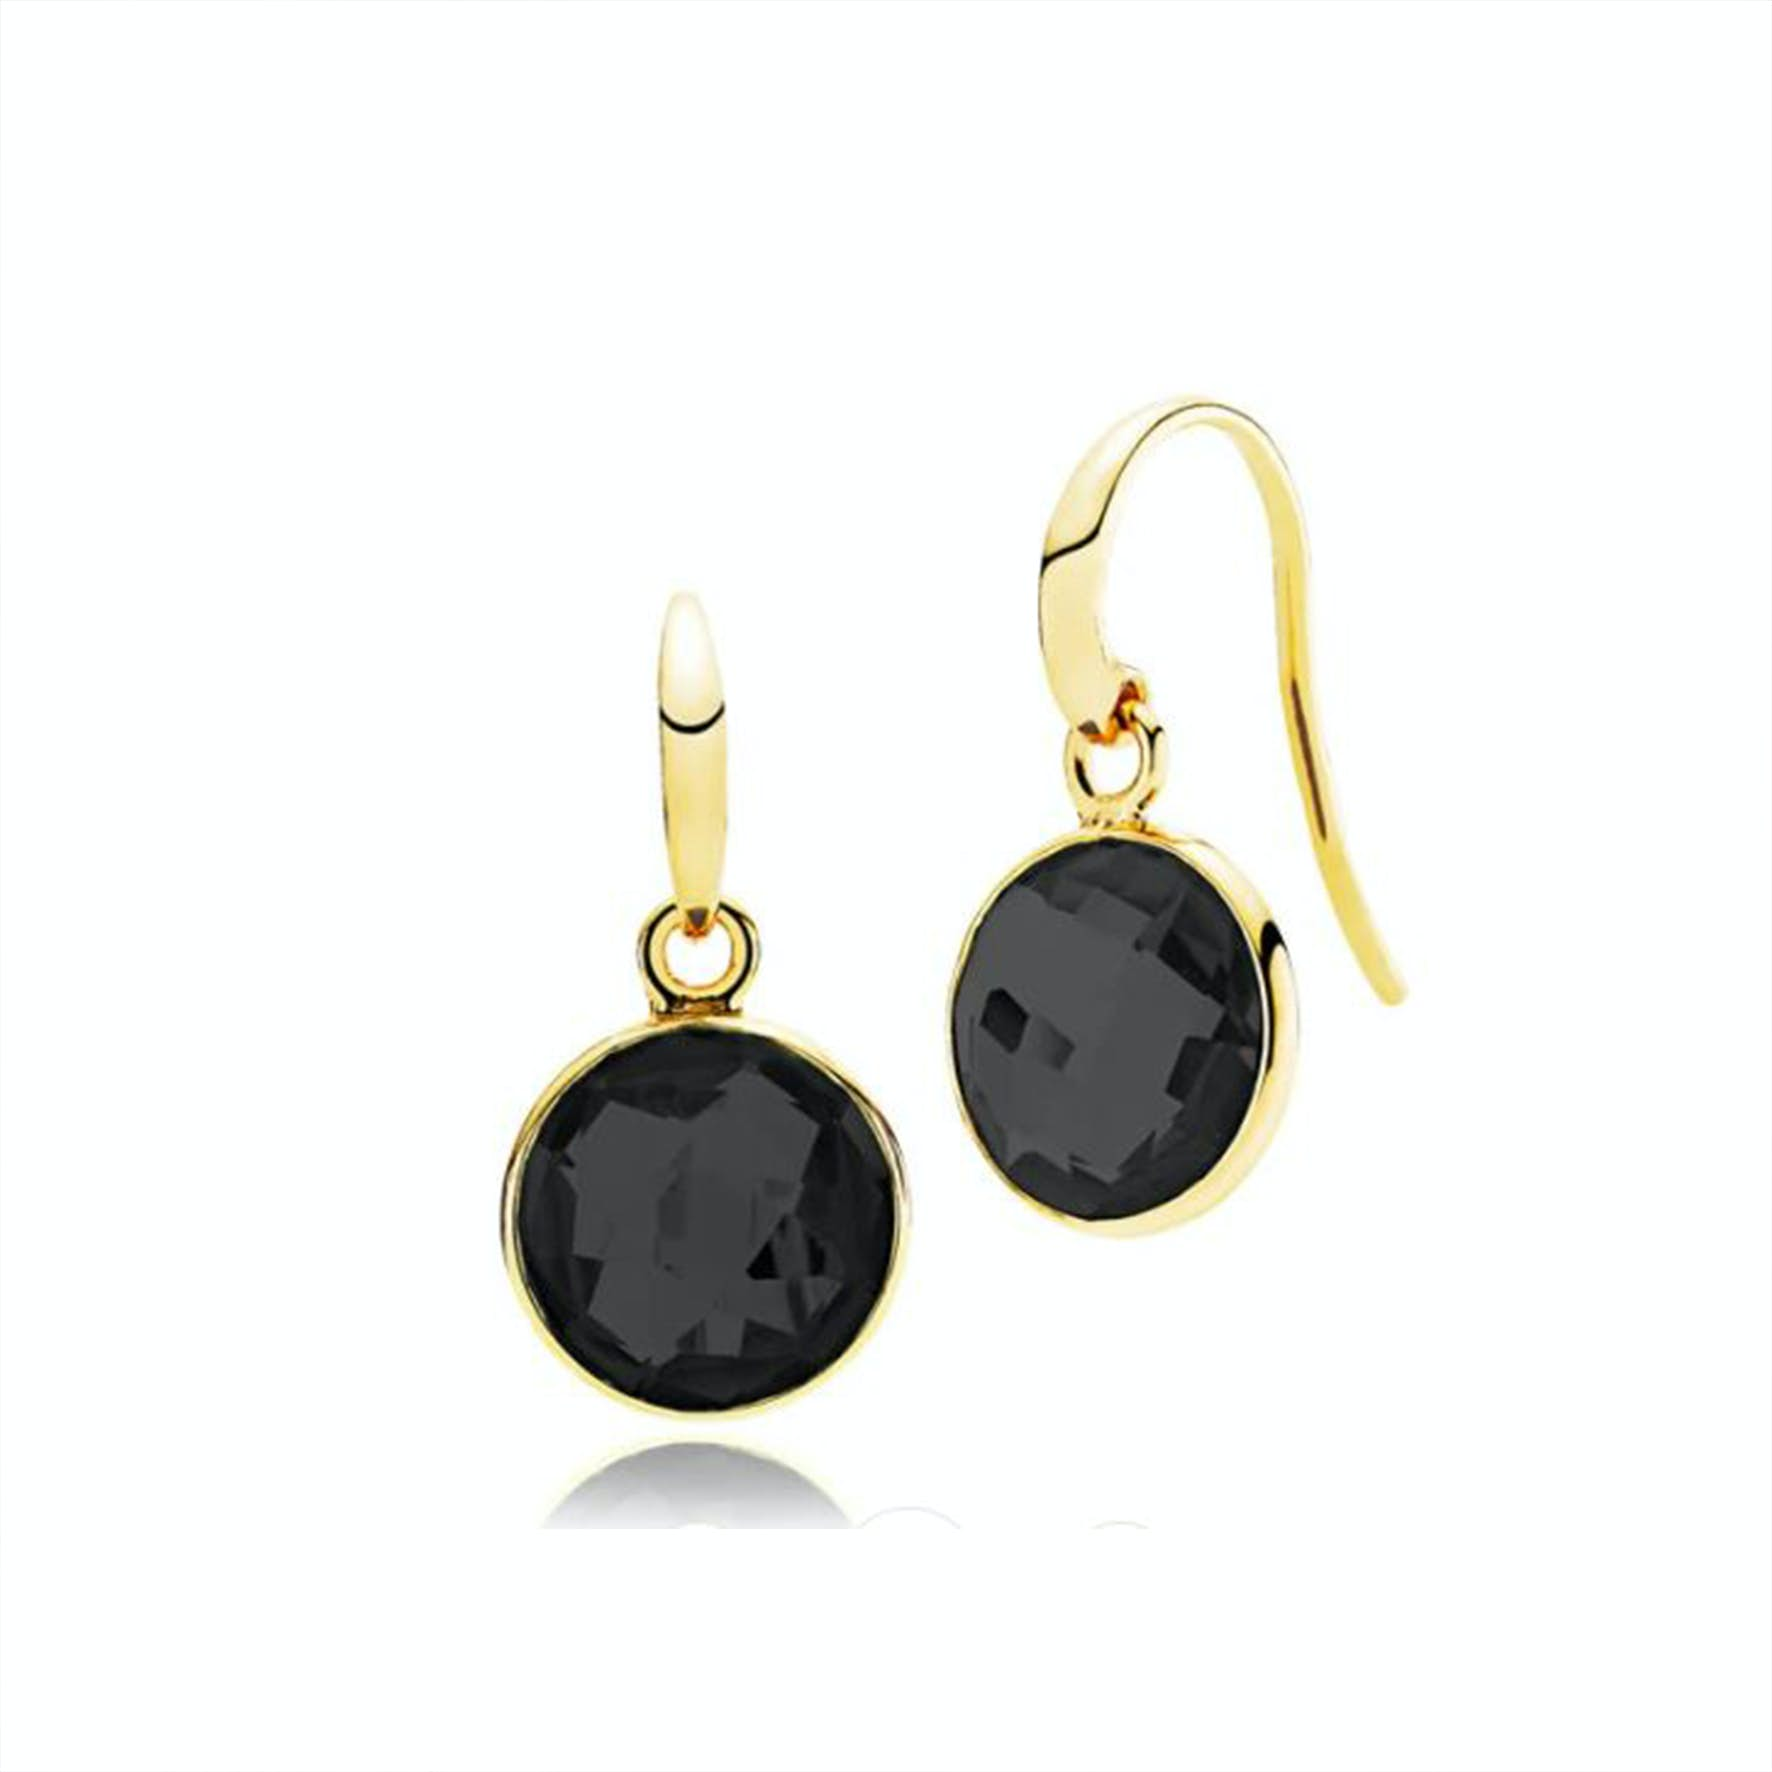 Prima Donna Earrings Black Onyx from Izabel Camille in Goldplated-Silver Sterling 925